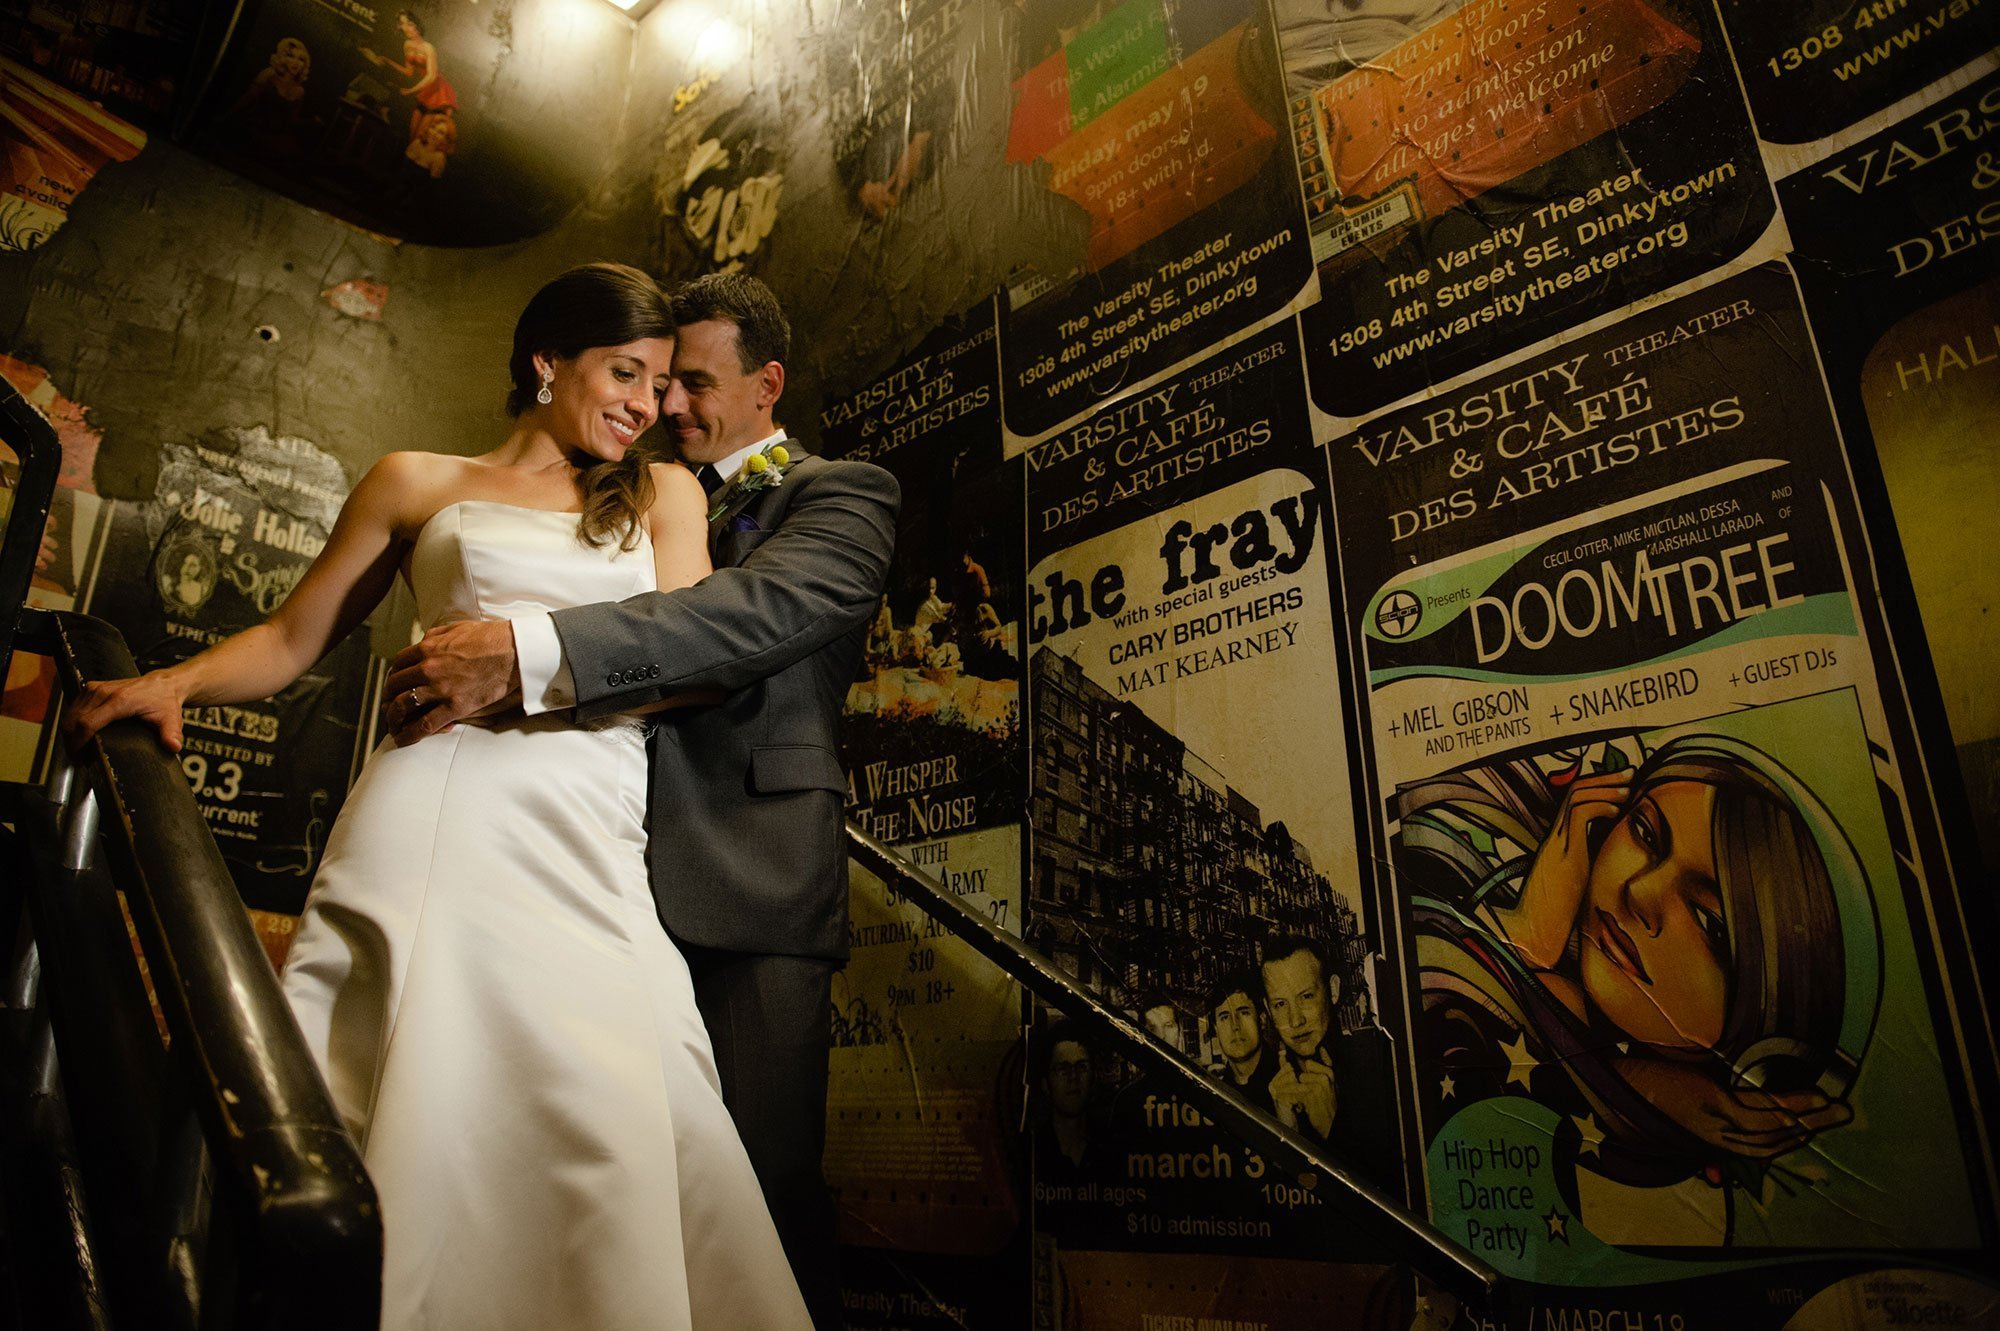 Varsity theater wedding photography couple on stairs by music posters